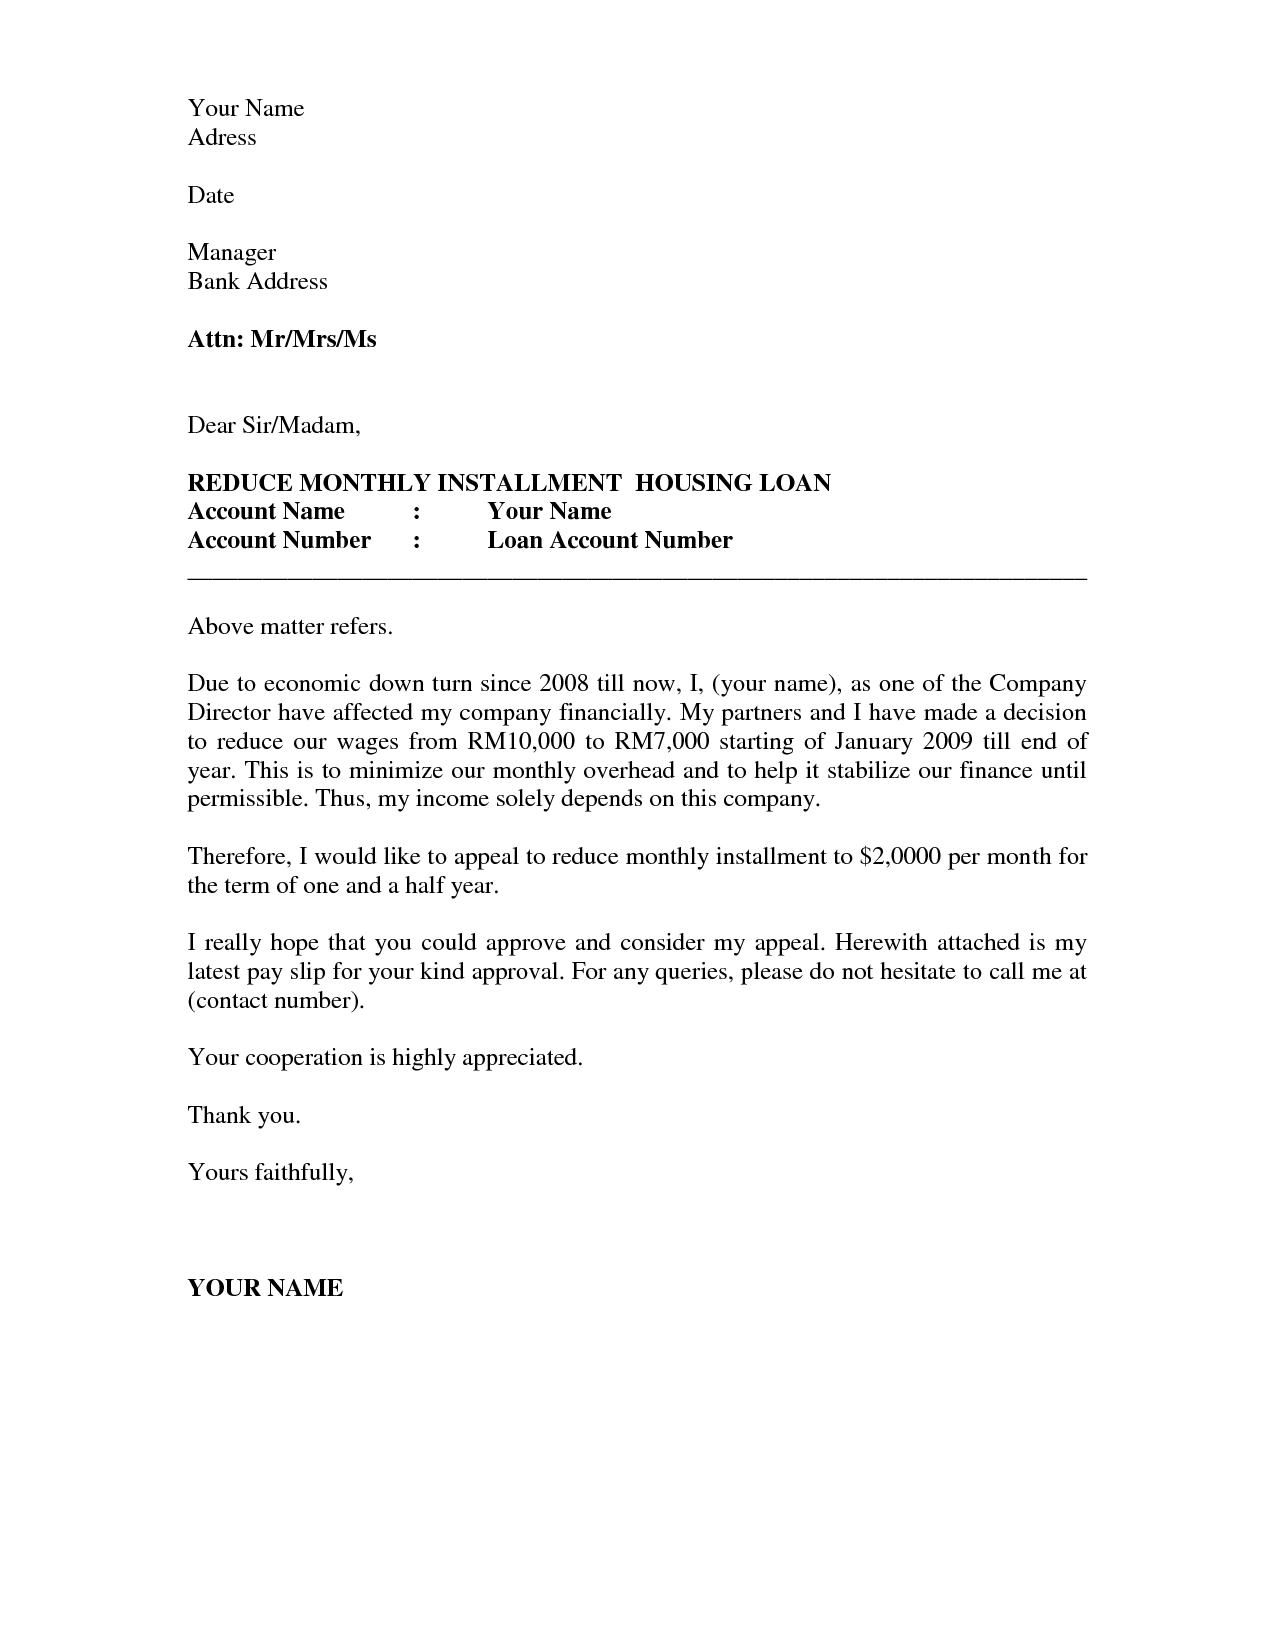 Fundraising Appeal Letter Template - How to Write A Good Appeal Letter Acurnamedia